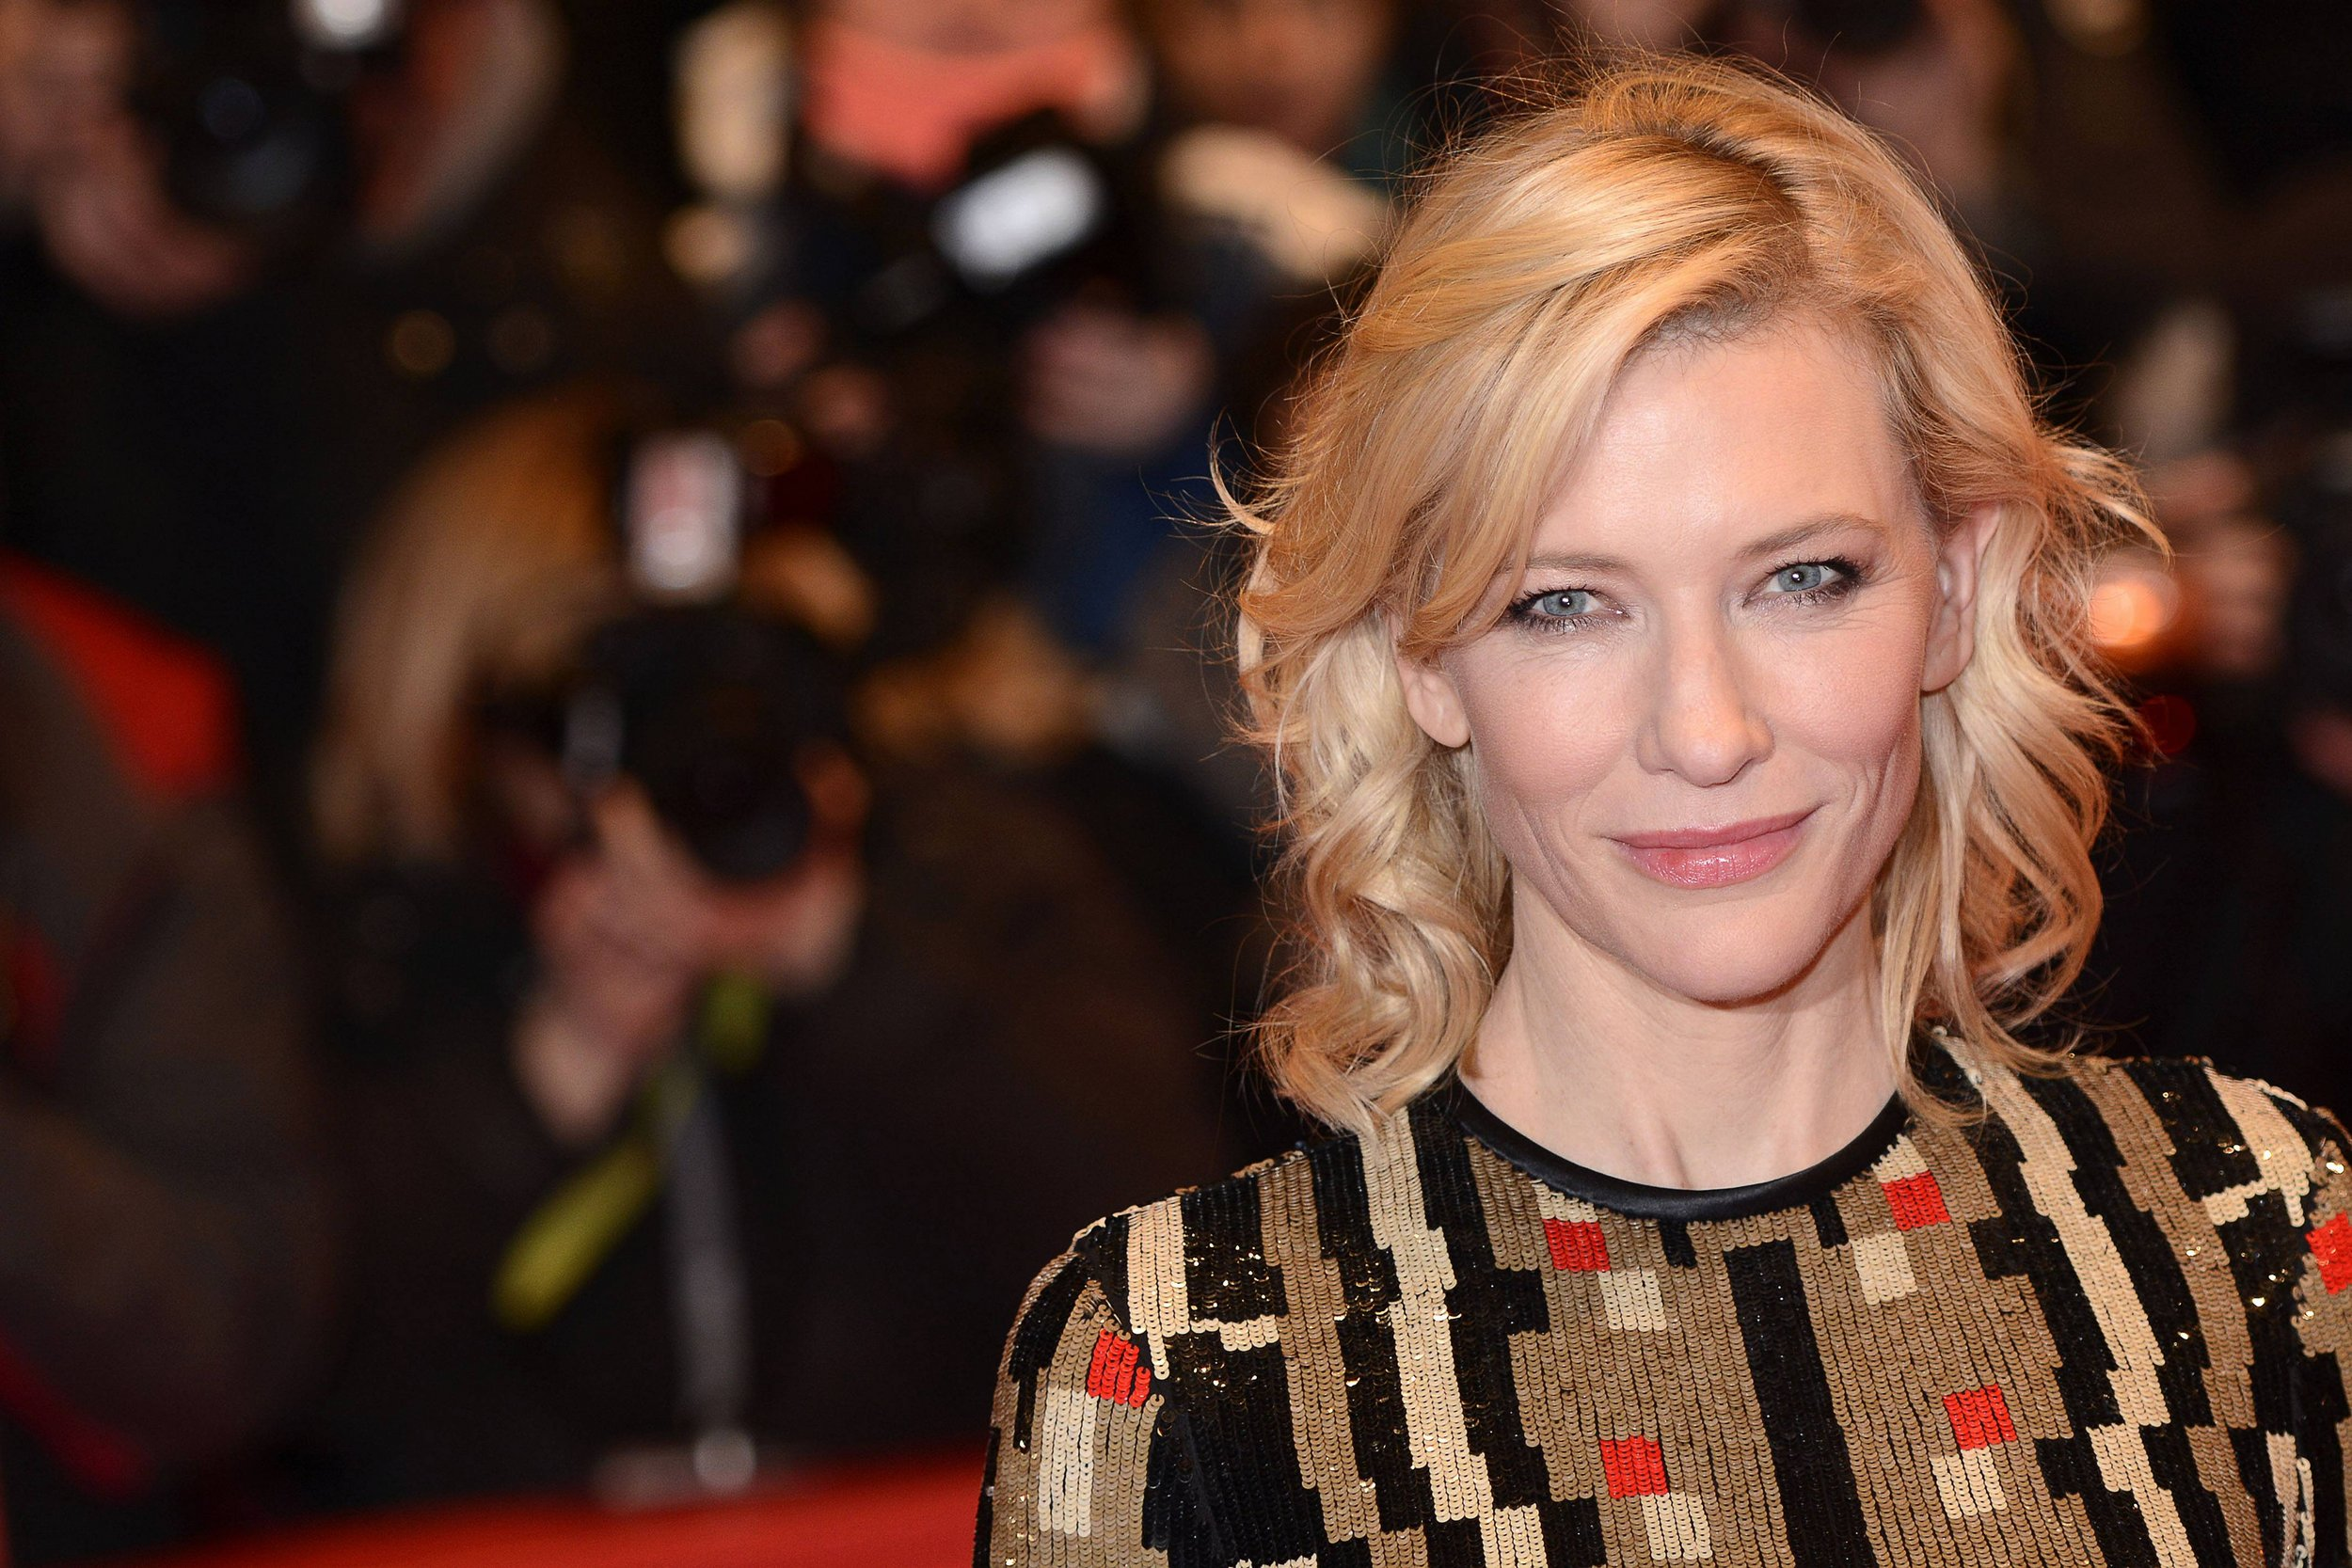 65th Berlinale Film Festival: Cinderella Premiere, Press Conference & Photocall Images